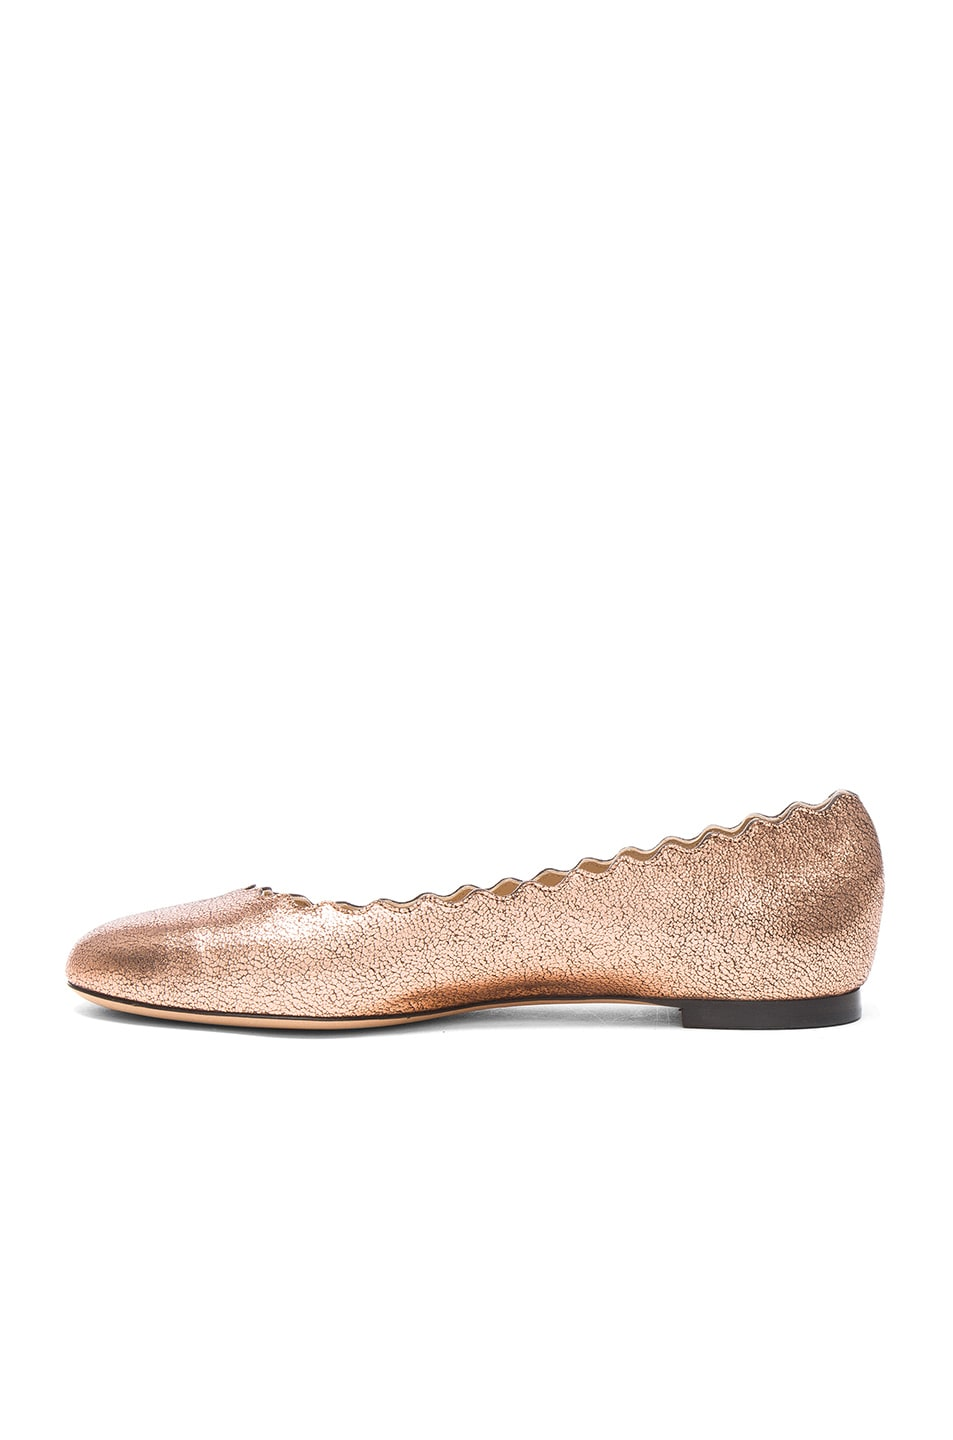 CHLOÉ Lauren Leather Flats